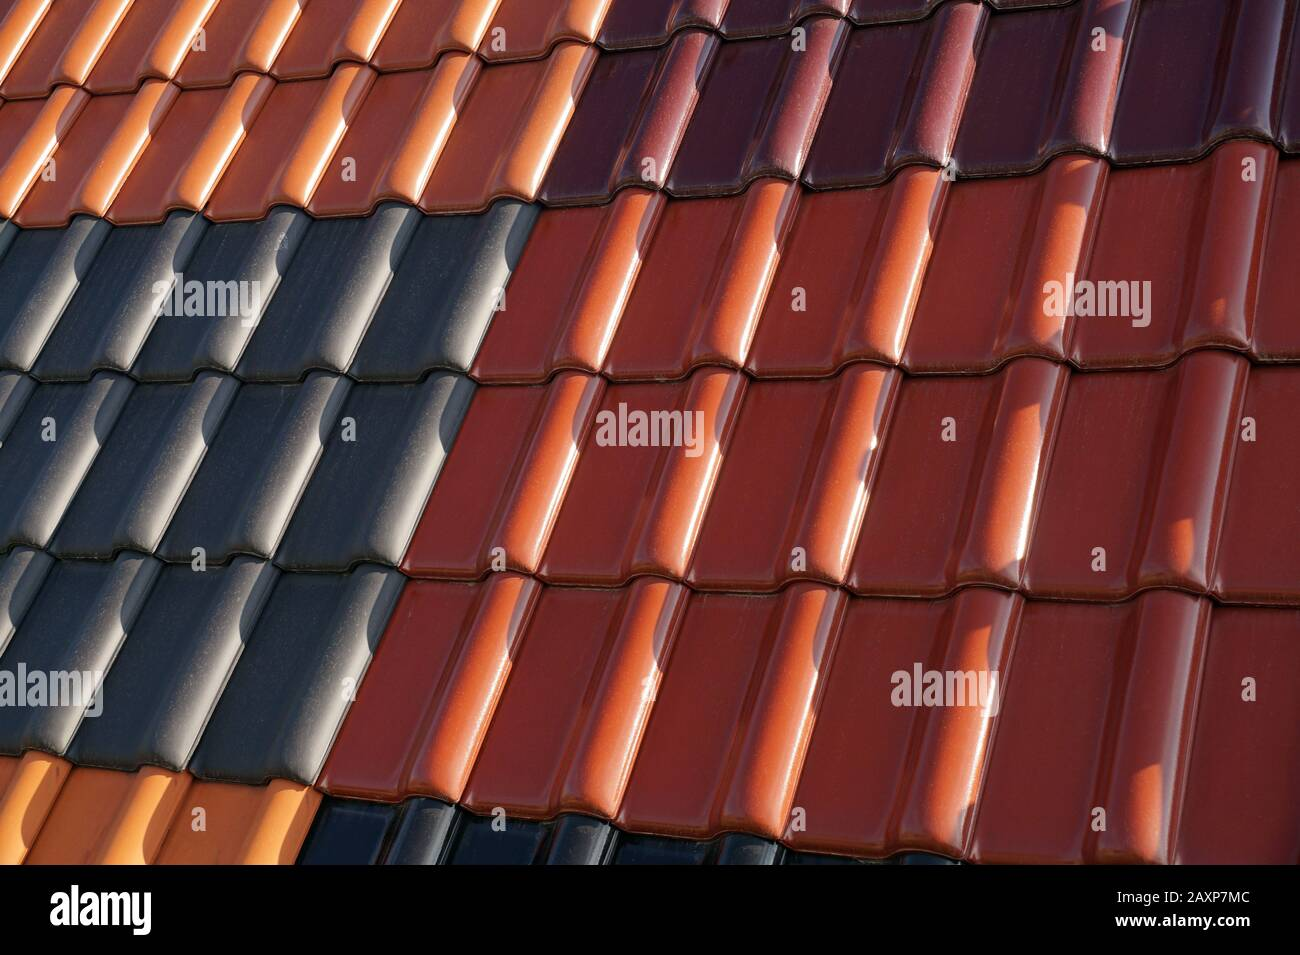 https www alamy com roofing roof covered with tiles in different colors image343467052 html